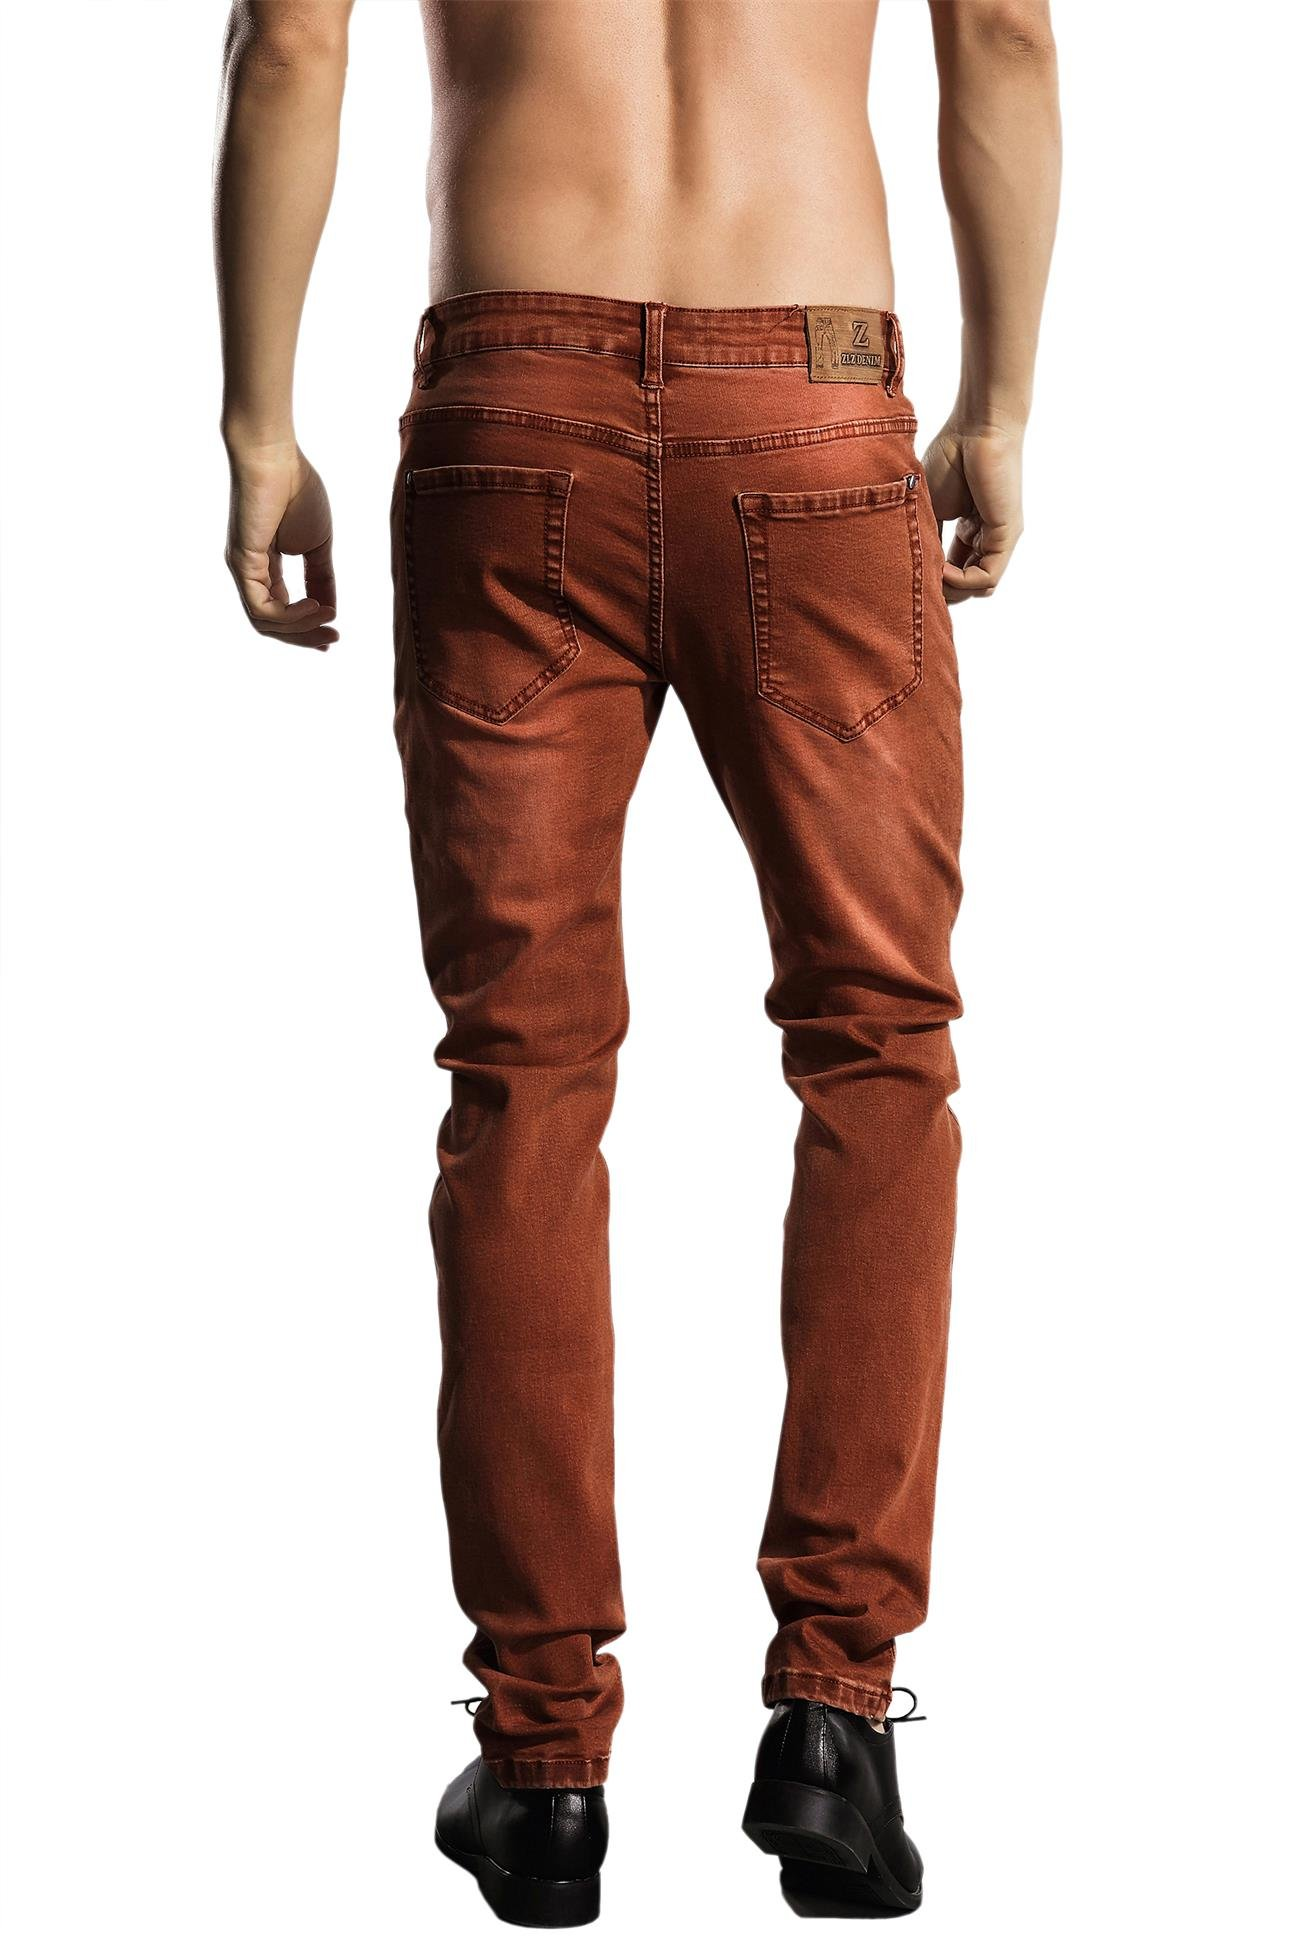 b204d1d0ba7d ZLZ Slim Fit Jeans, Men's Younger-Looking Fashionable Colorful Super Comfy  Stretch Skinny ...